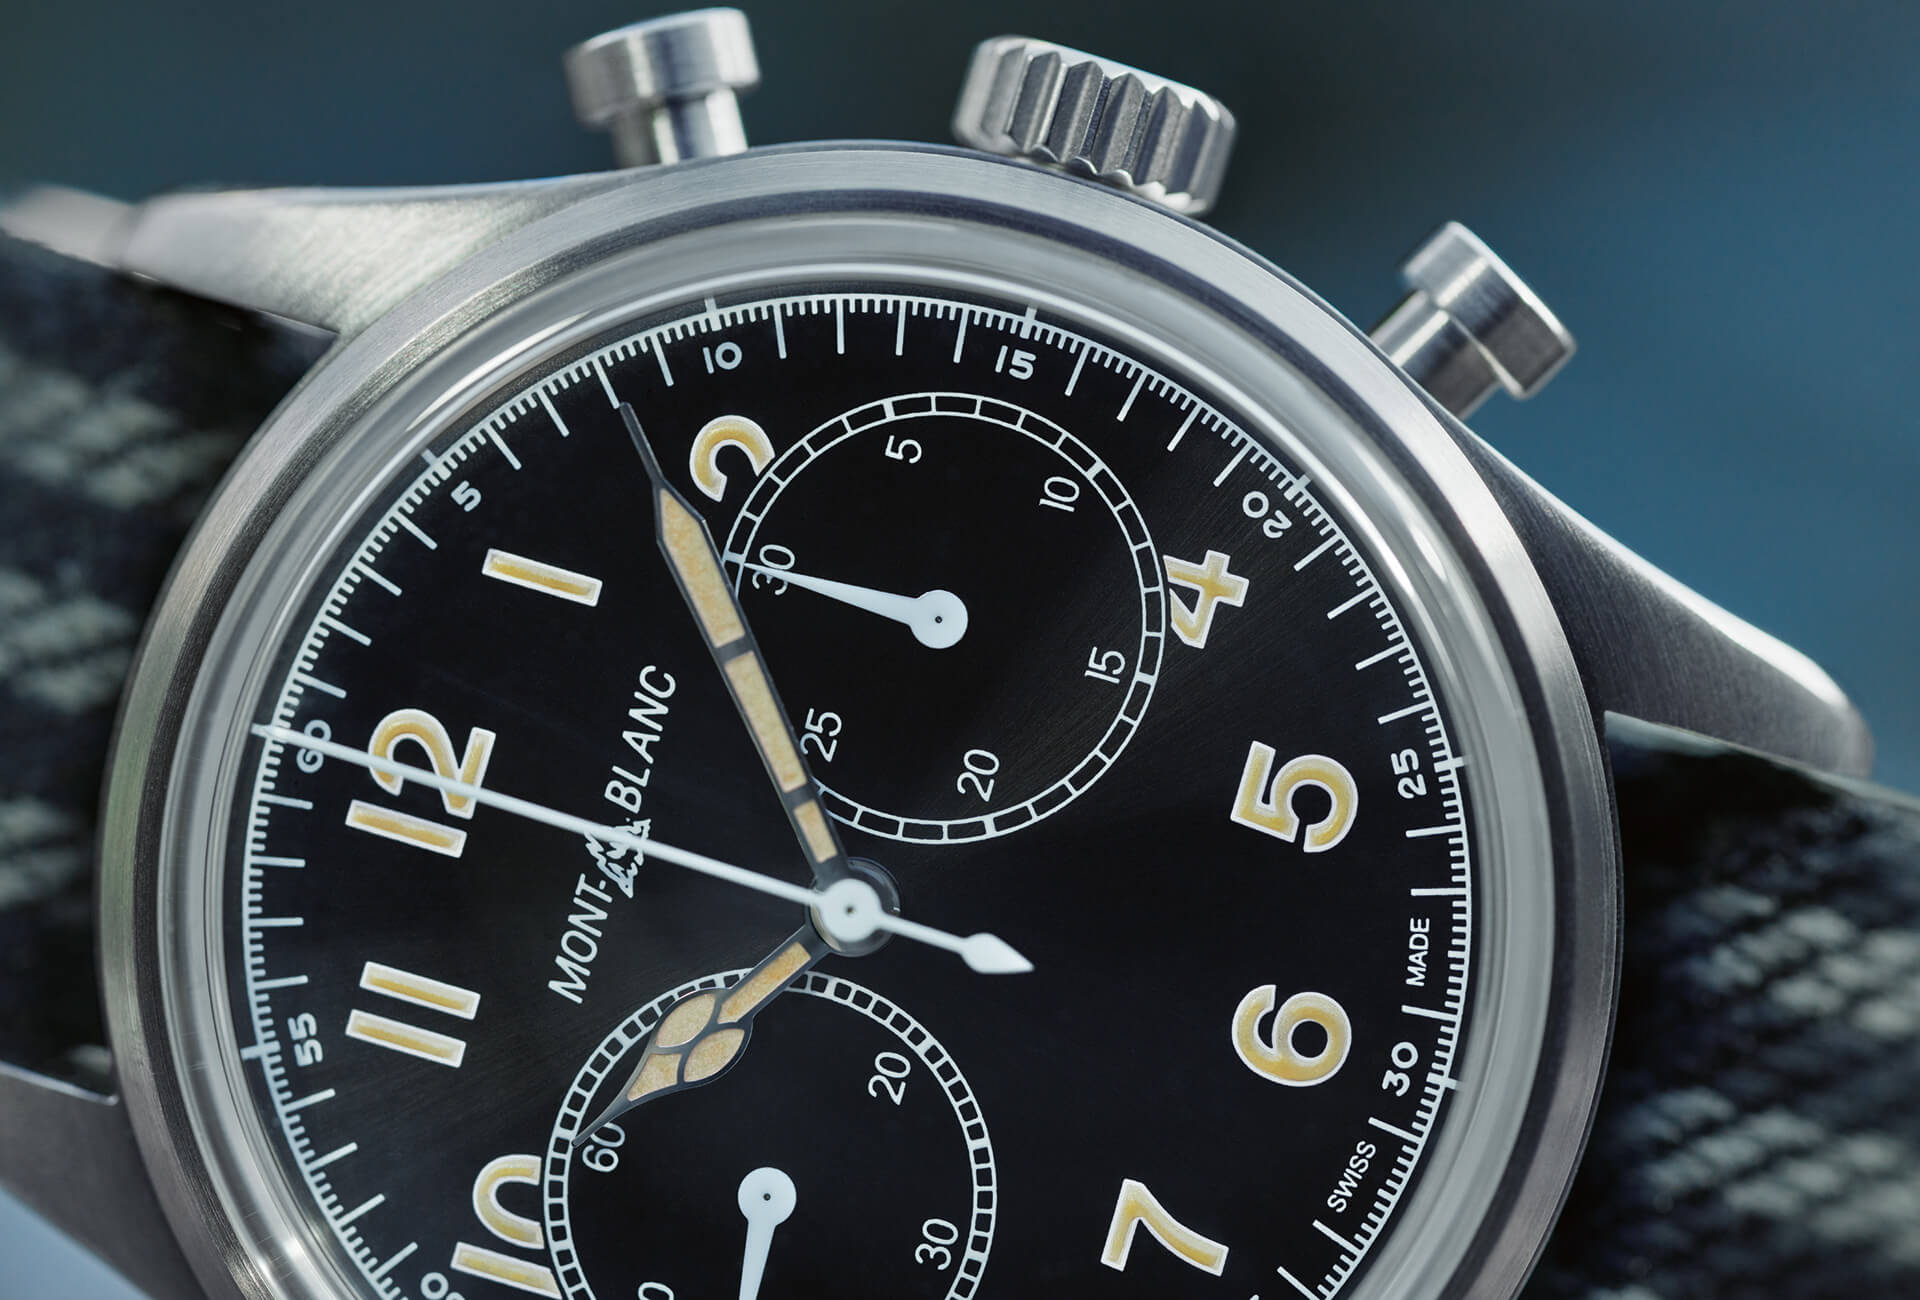 f8db9c4ff16 The art of vintage by Montblanc in the 1858 Automatic Chronograph ...